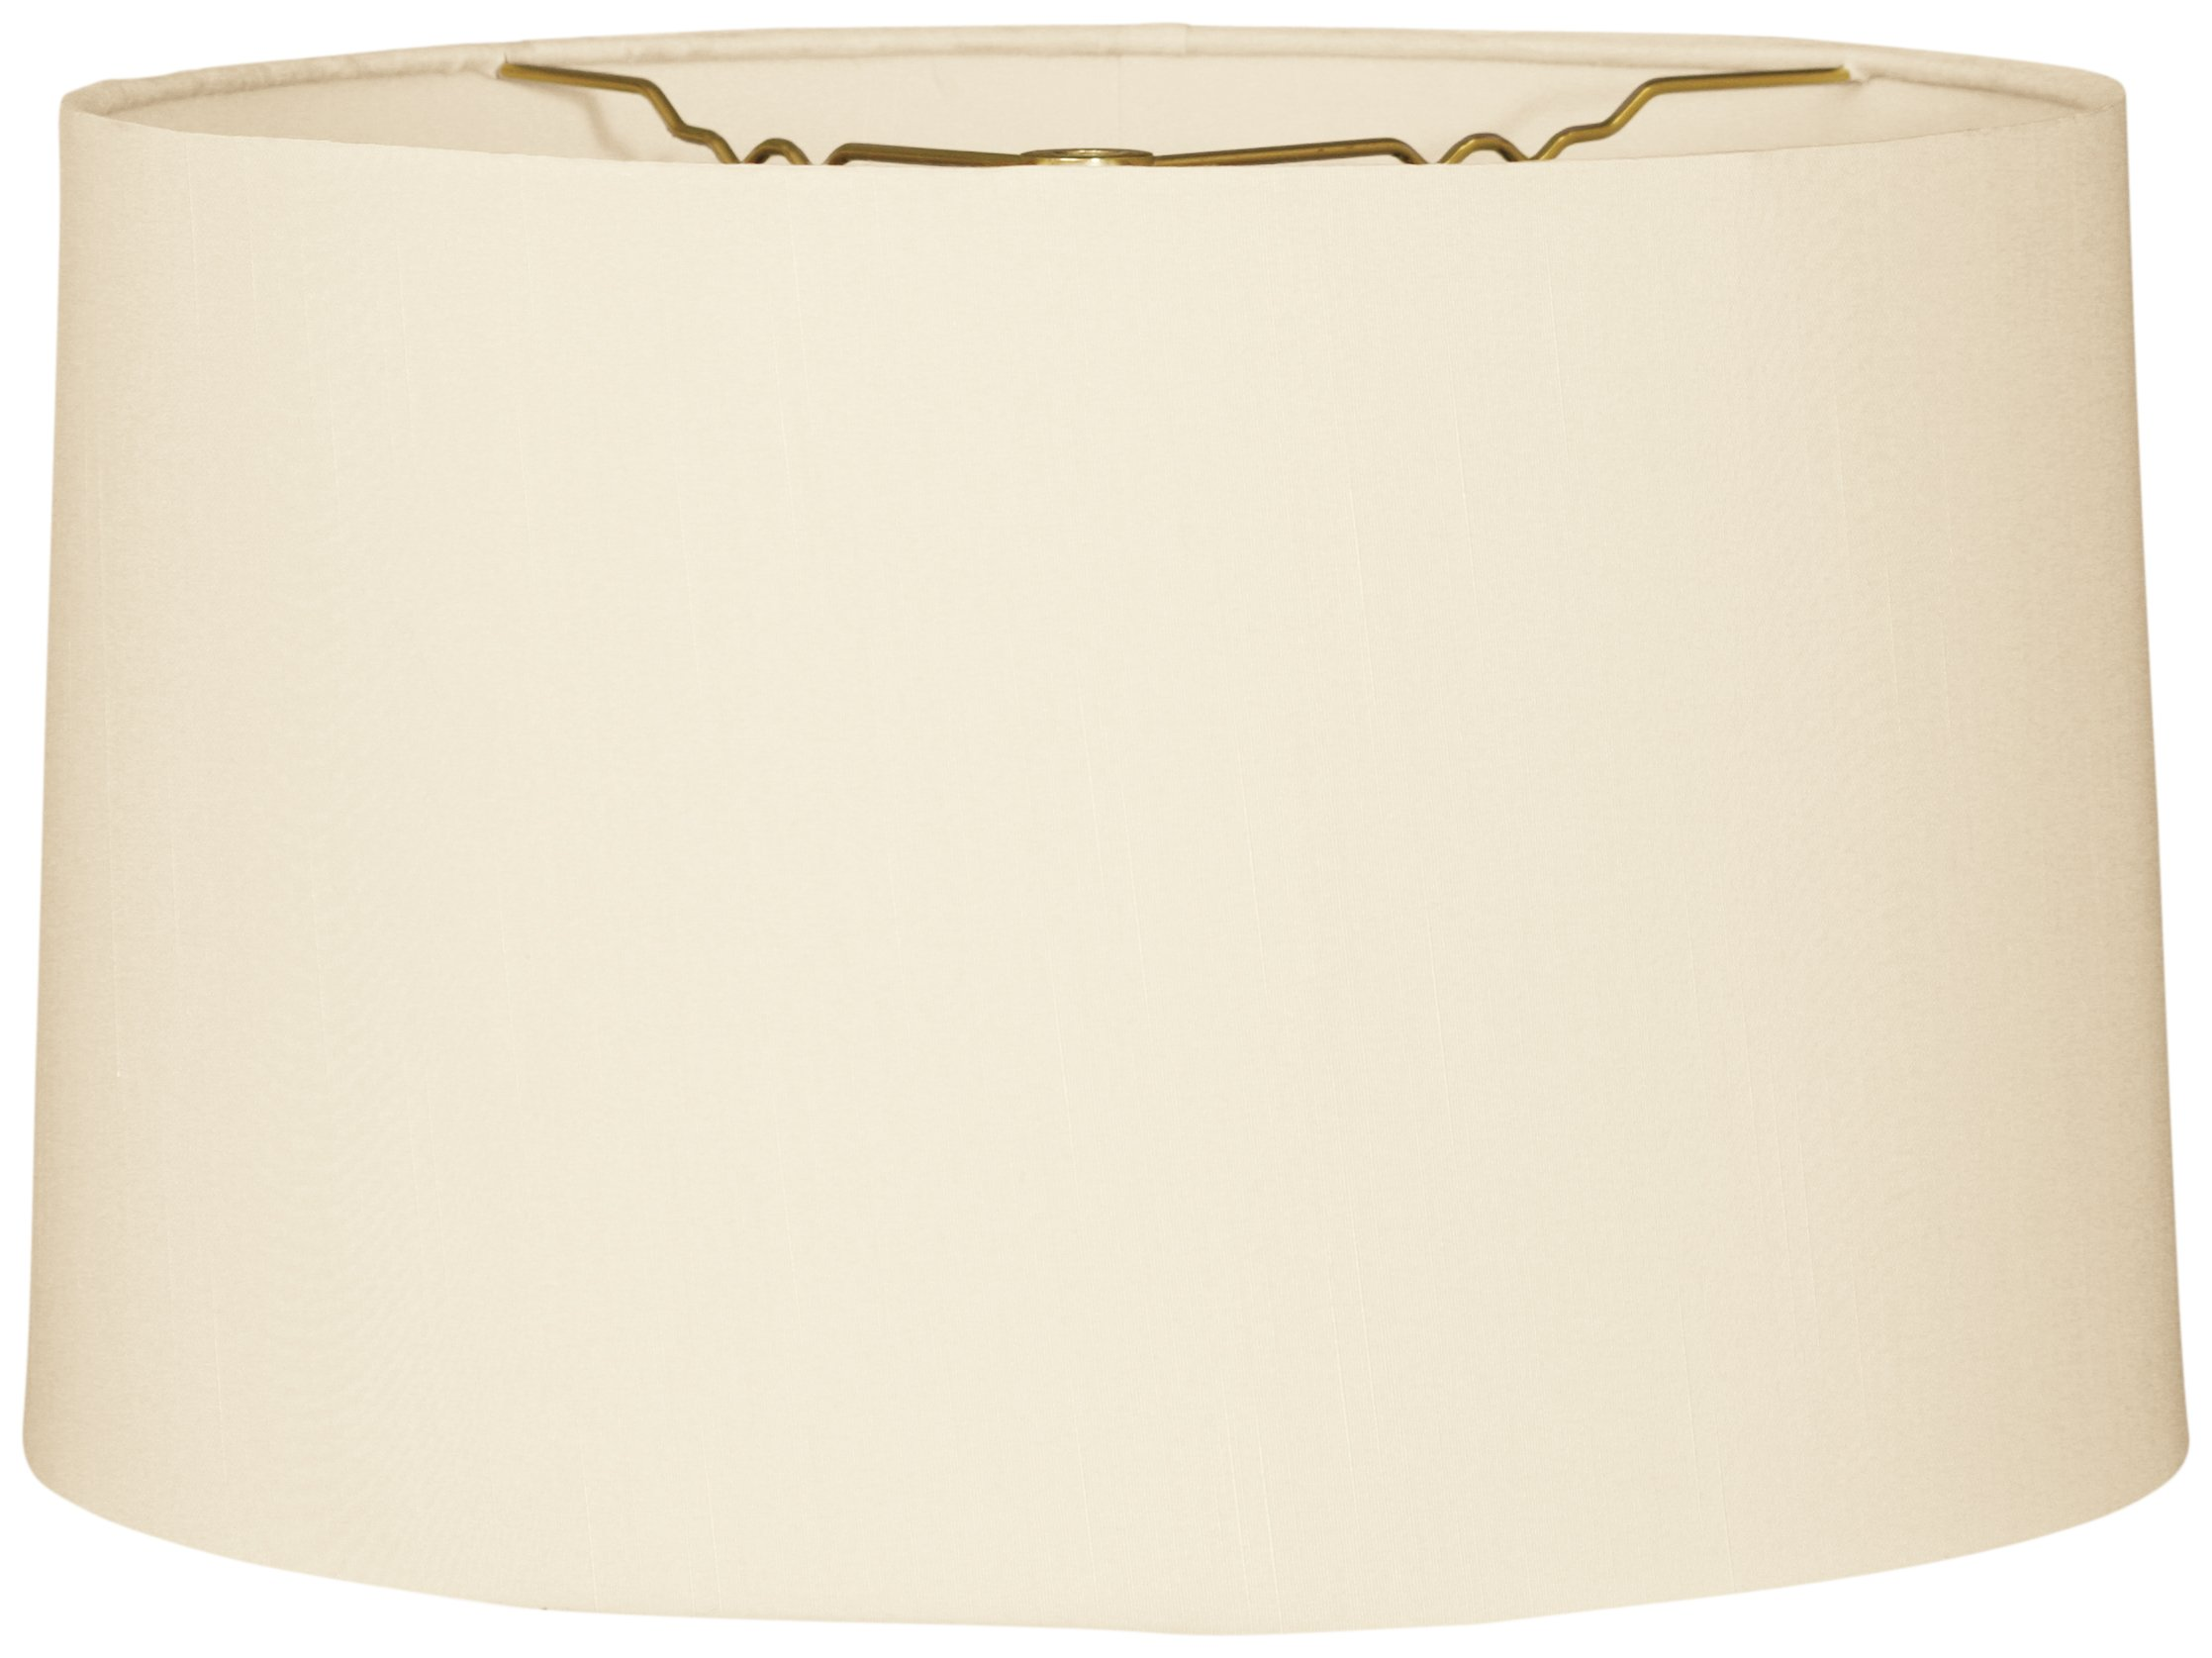 Royal Designs Shallow Drum Hardback Lamp Shade, Eggshell, 17 x 18 x 11.5 by Royal Designs, Inc